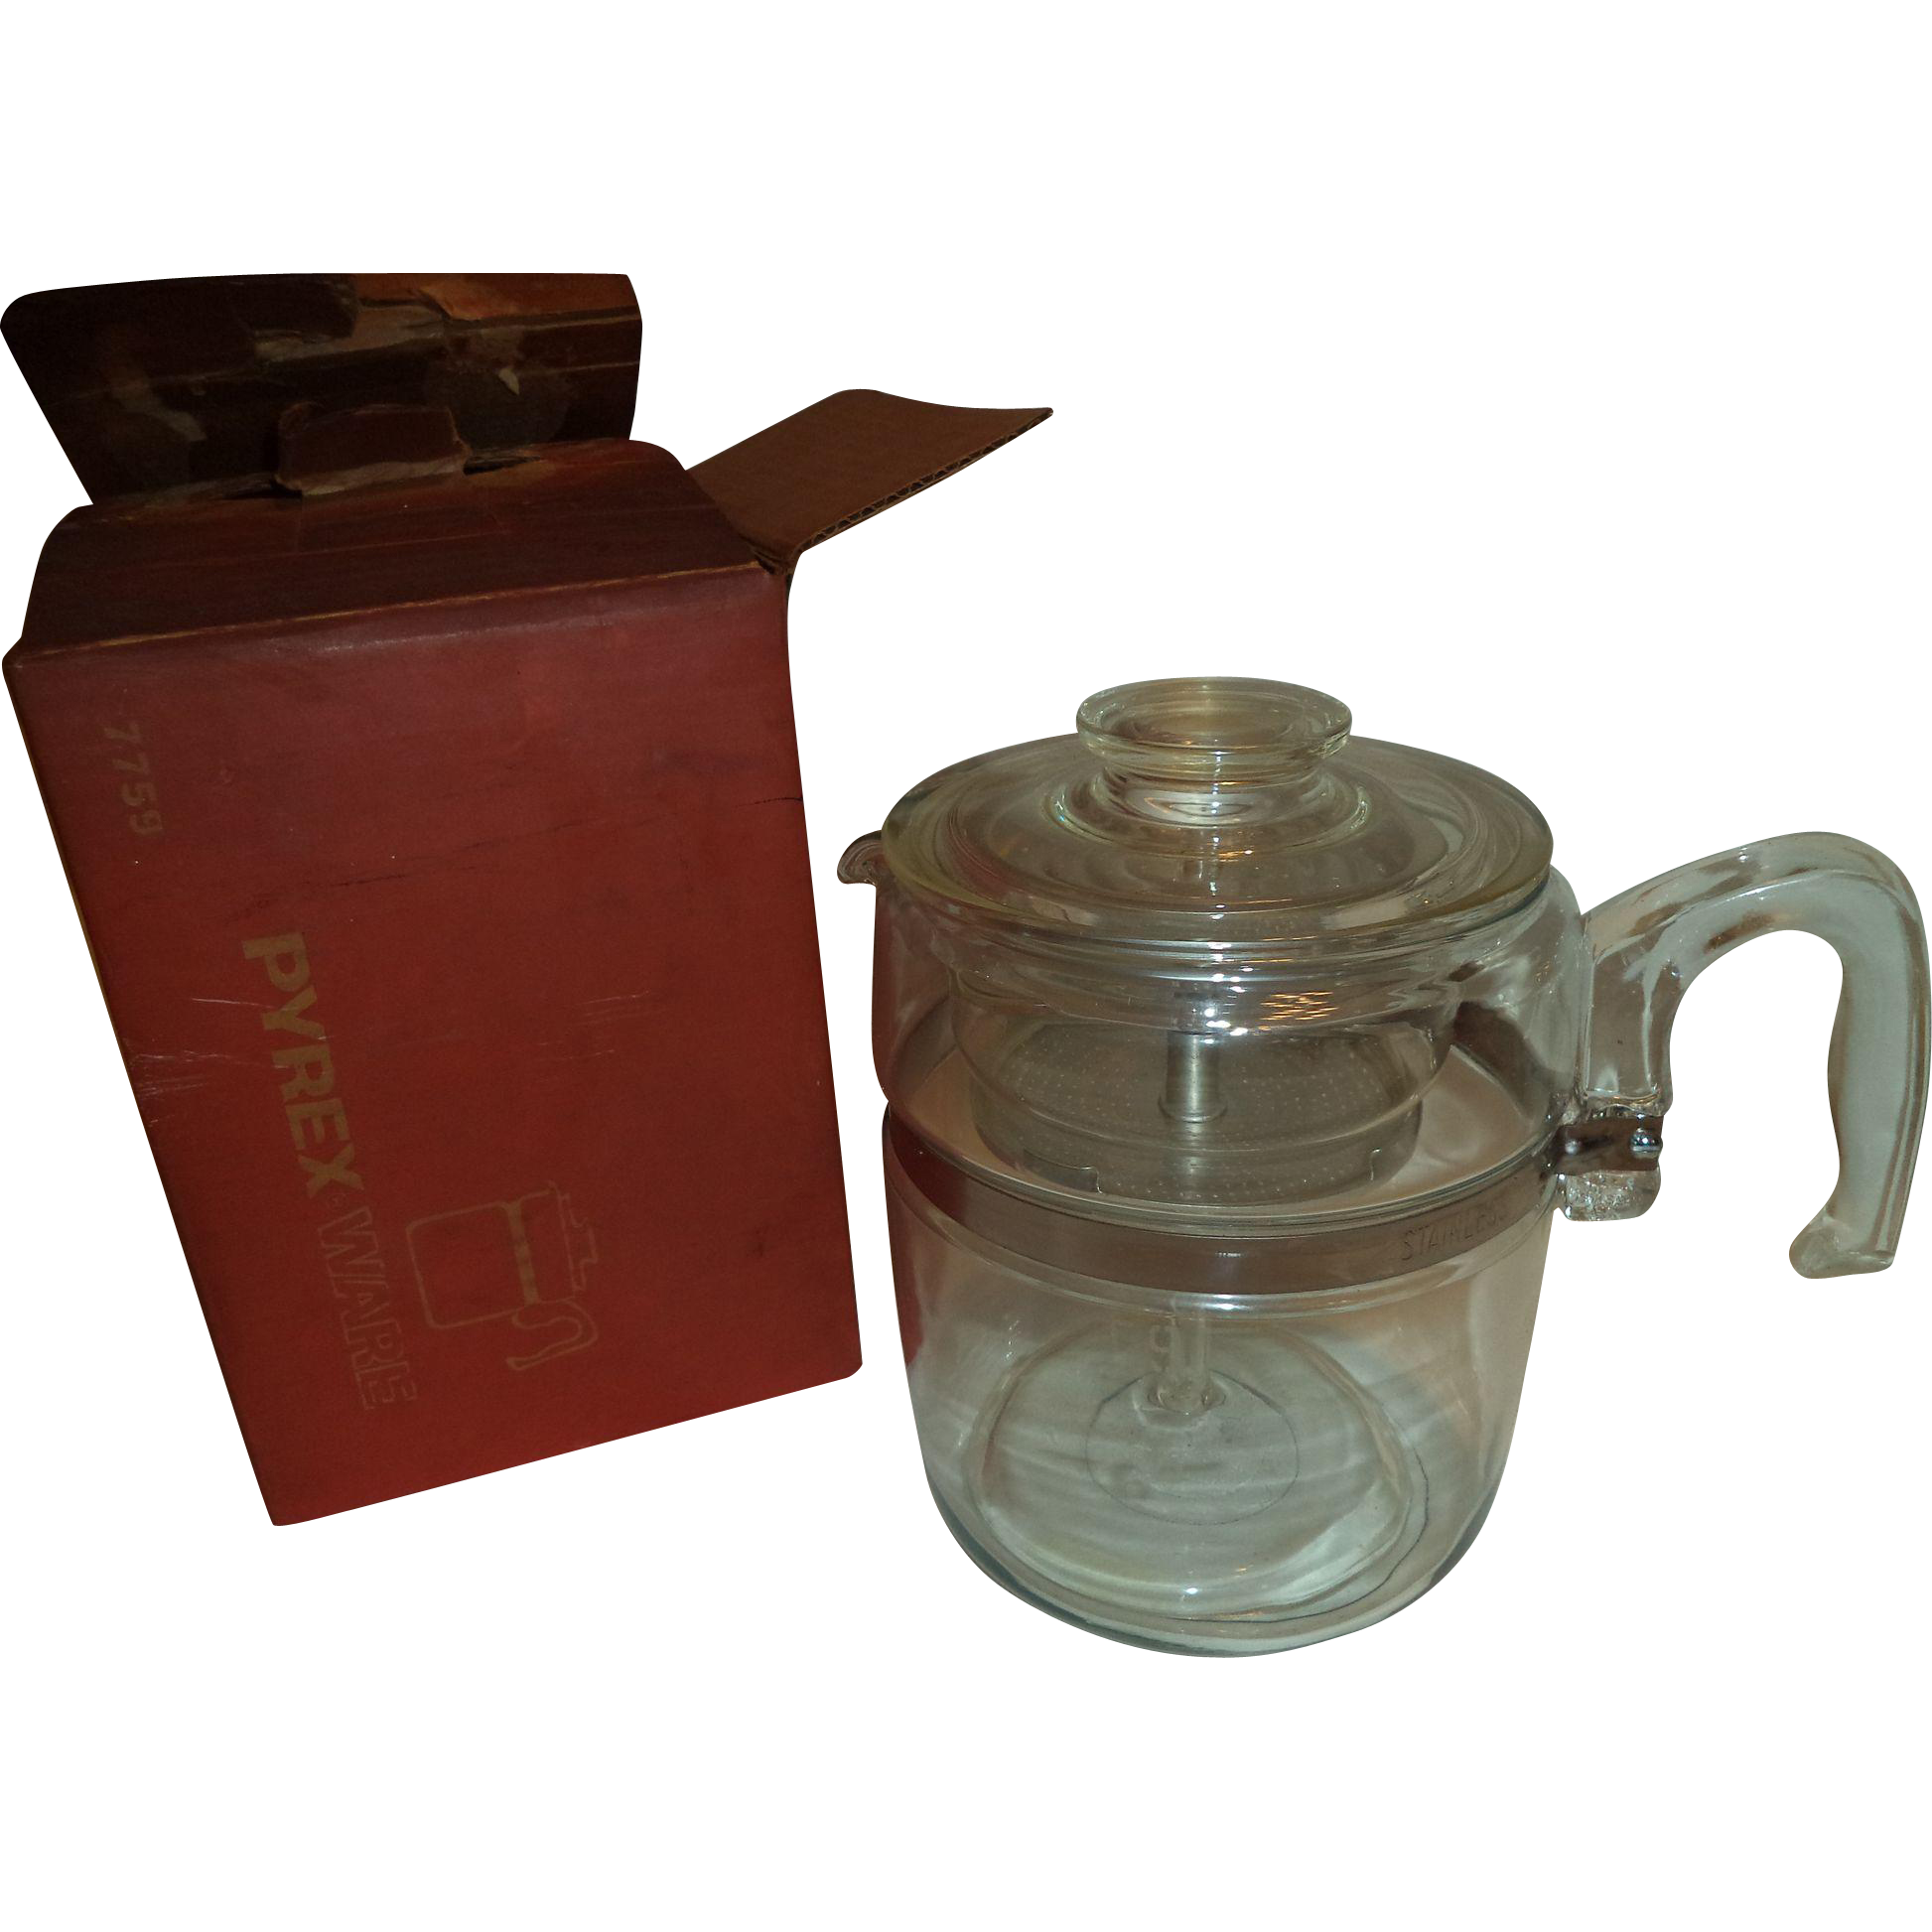 Mib pyrex 9 cup range top percolator coffee pot sold on for Best coffee percolator